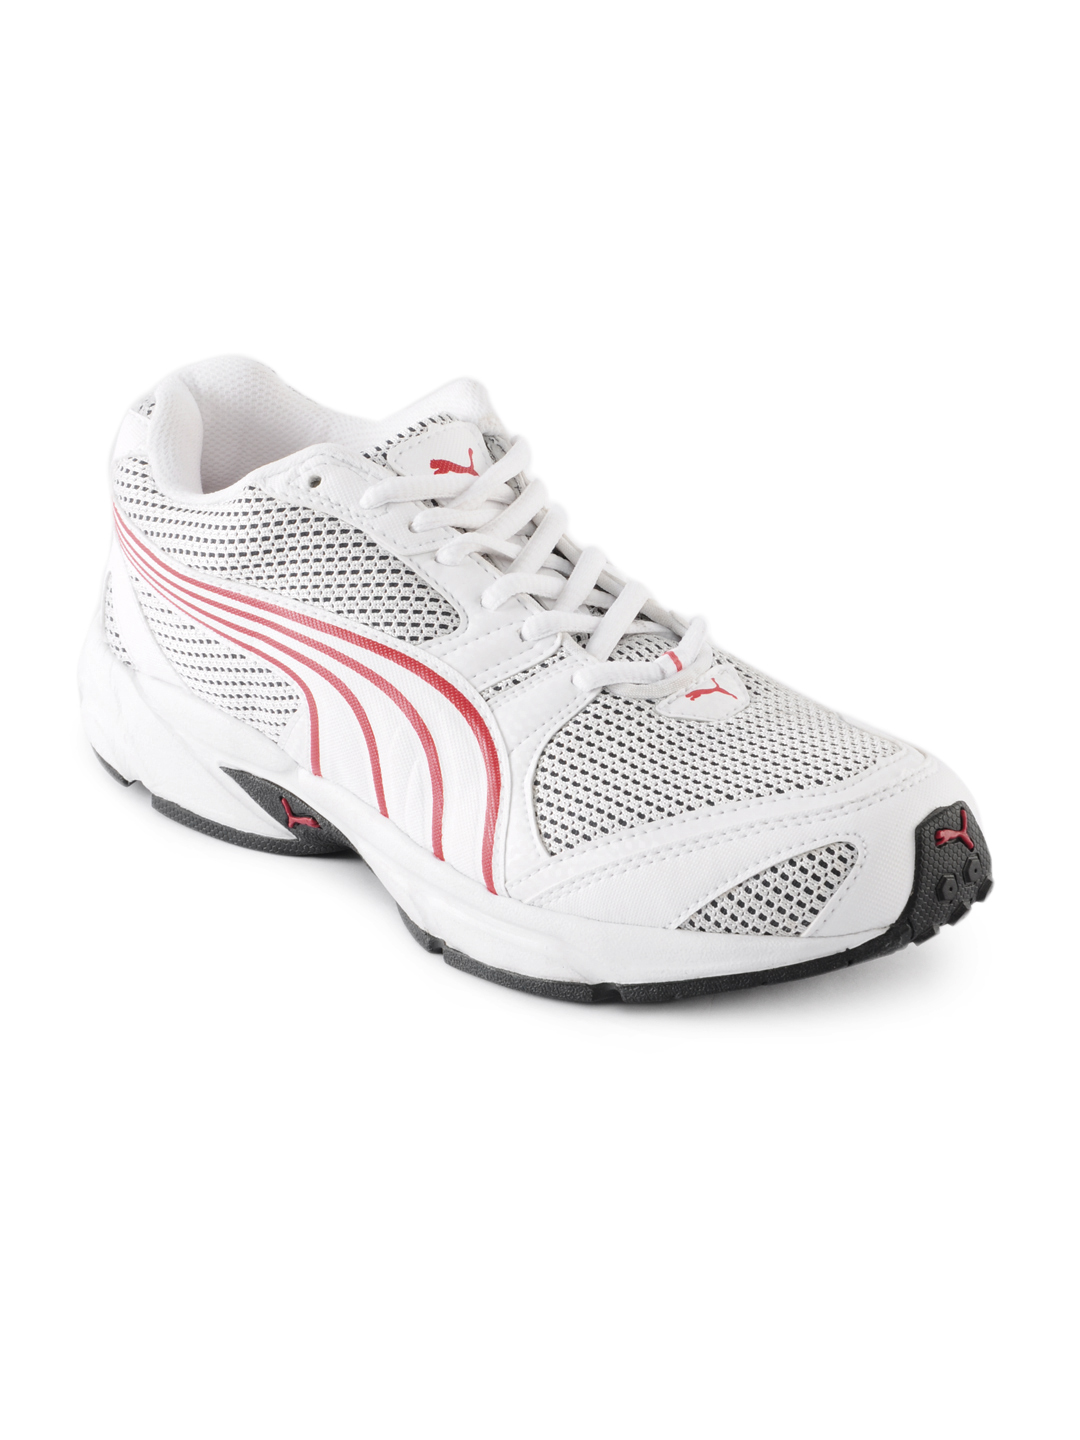 Puma Men Aquil White Sports Shoes